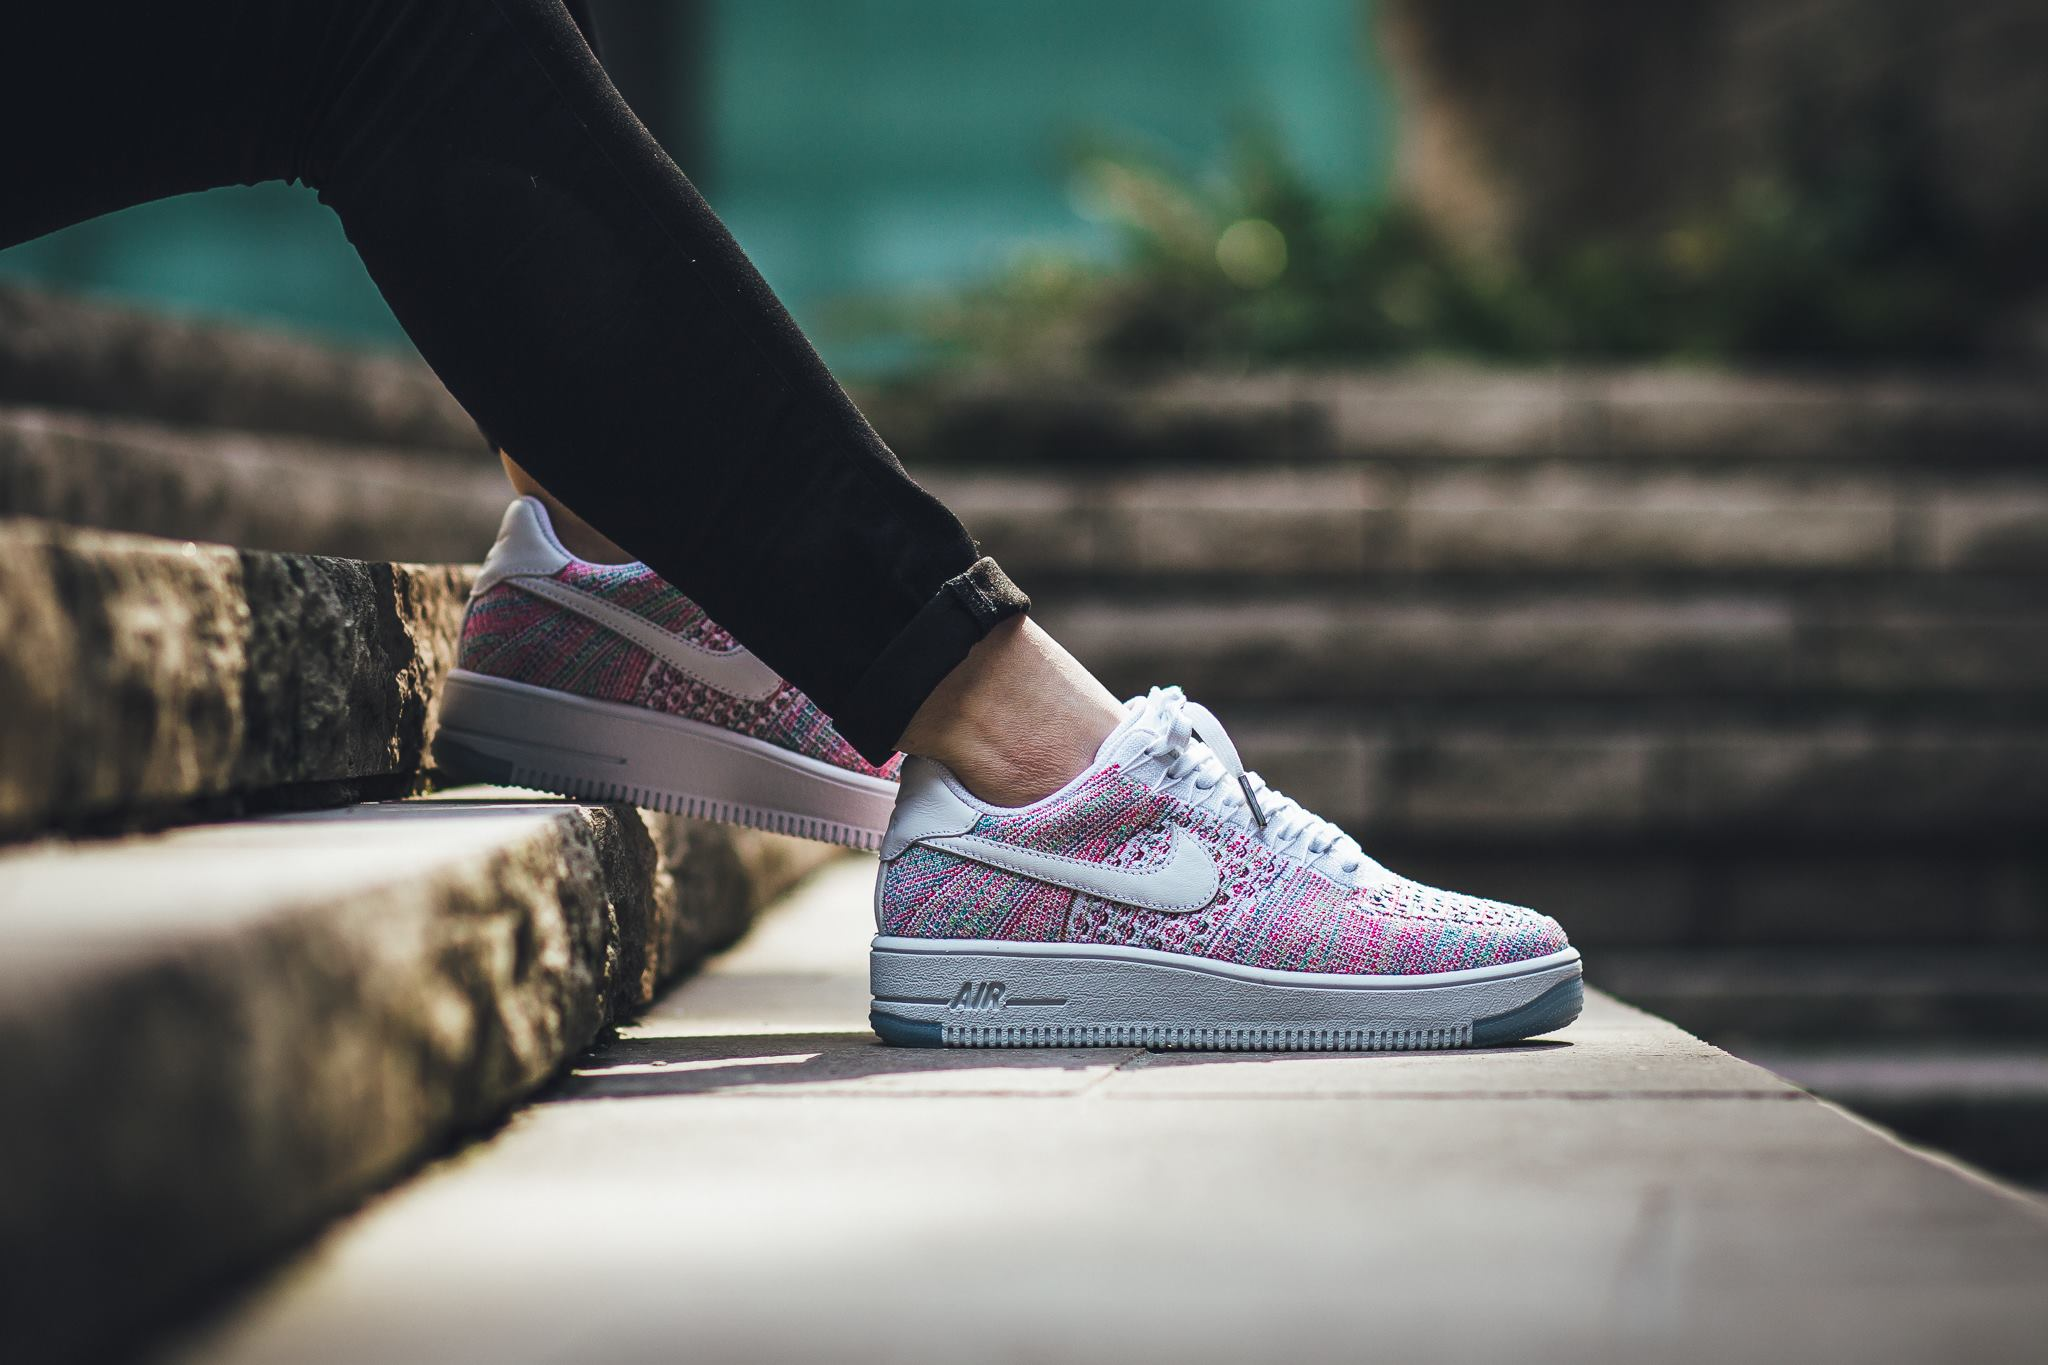 For The Ladies: Nike WMNS Air Force 1 Flyknit Low 'Hyper Turquoise